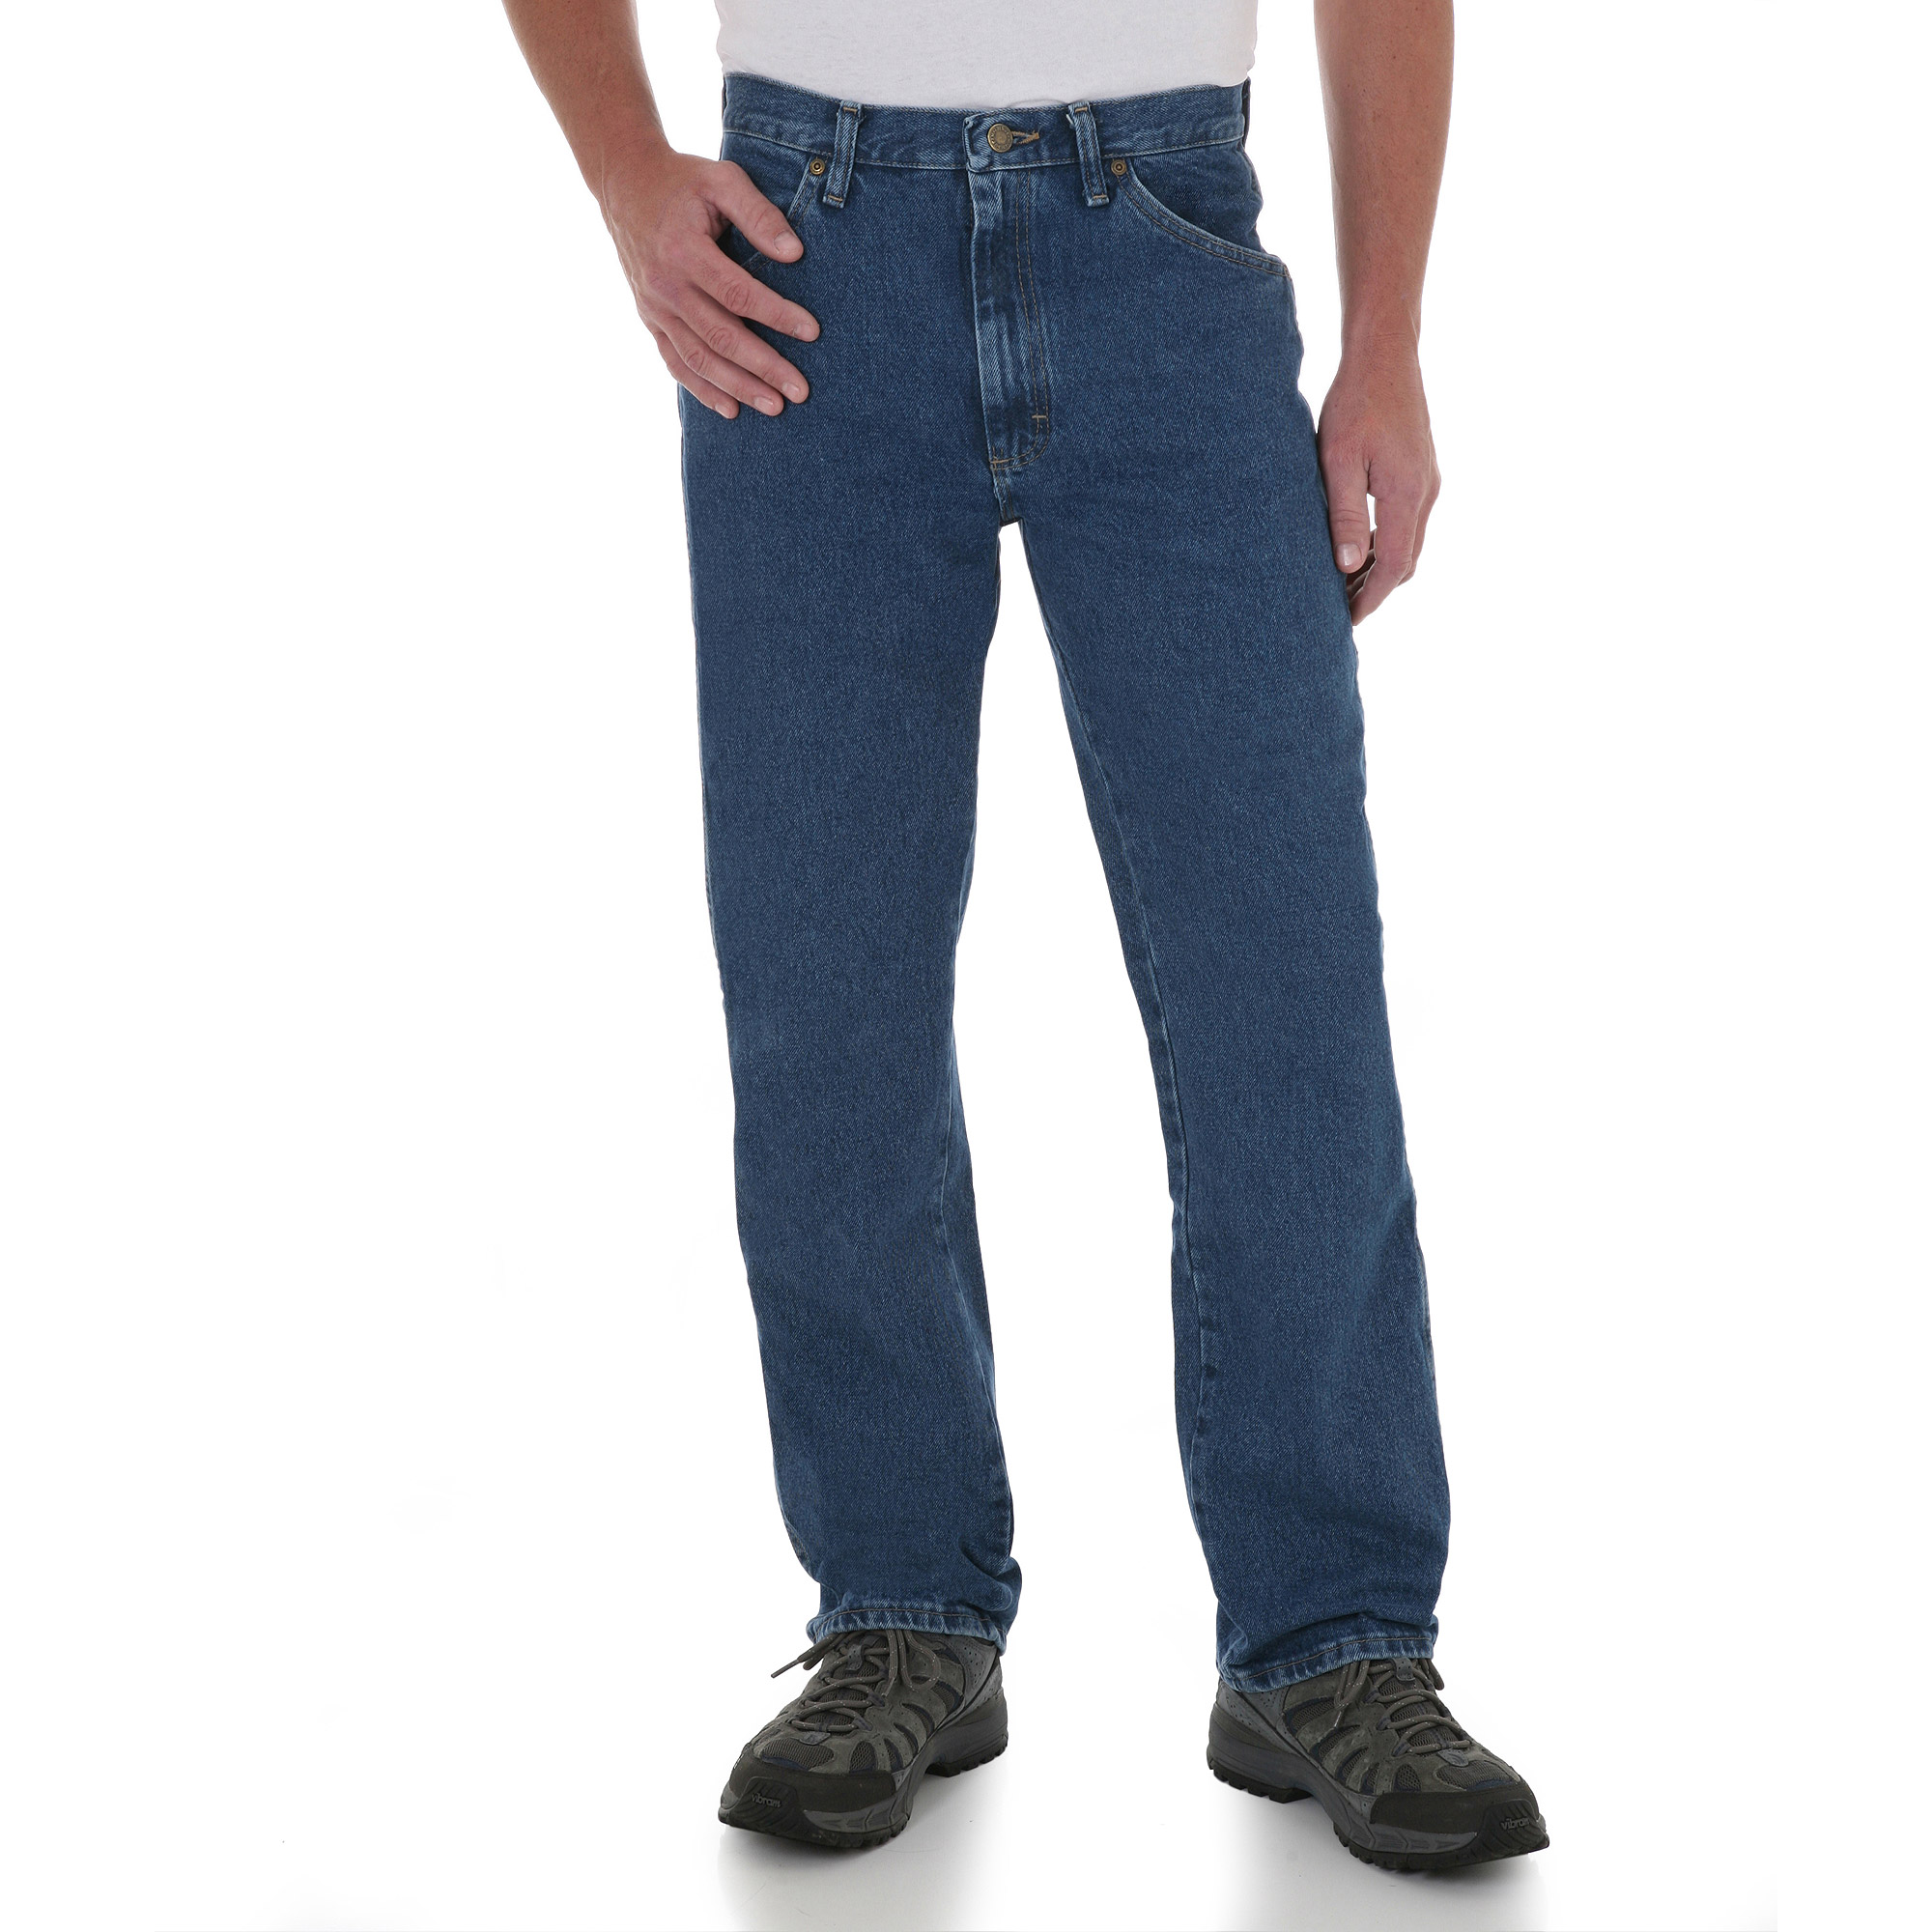 Wrangler - Tall Men's Regular Fit Jeans - Walmart.com